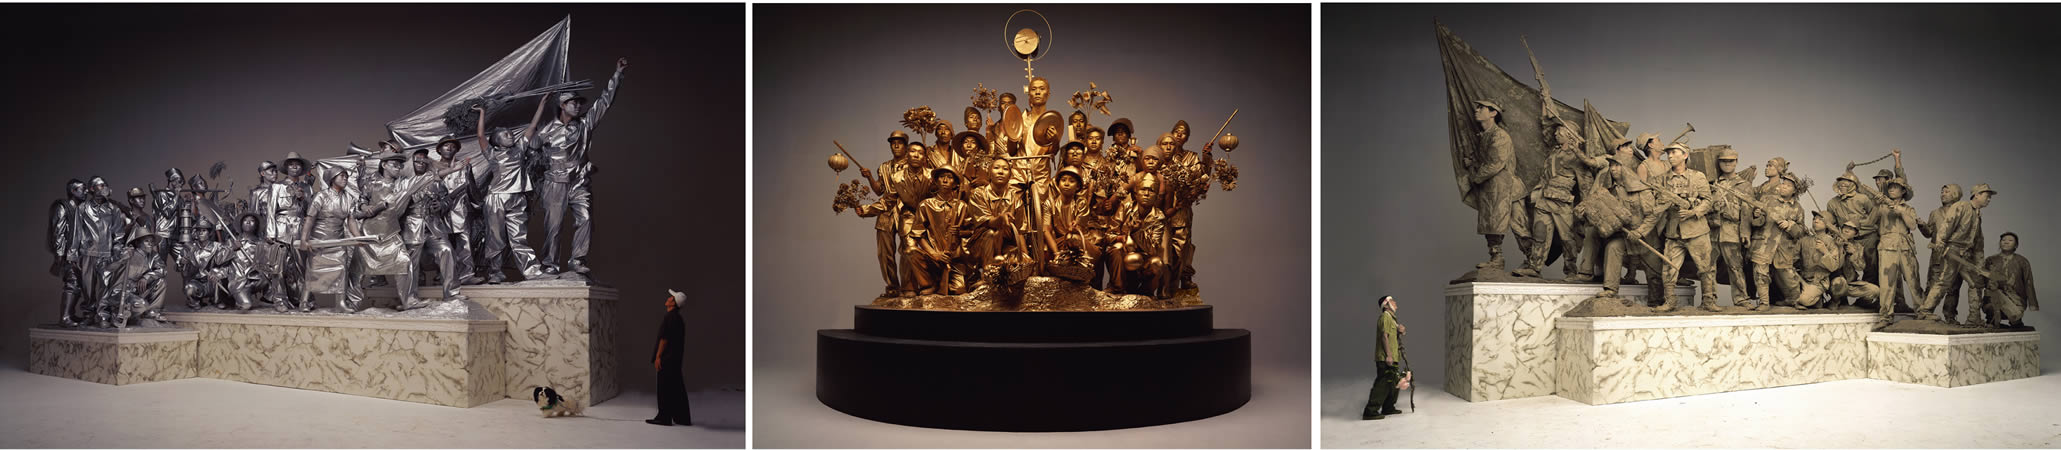 'Past, Present, Future' by Wang Qinsong. Models are smeared with mud and silver and golden powder, hinting at the changes that have taken place as China moves from revolutionary times into its age of modernisation. Image courtesy of AW Asia.